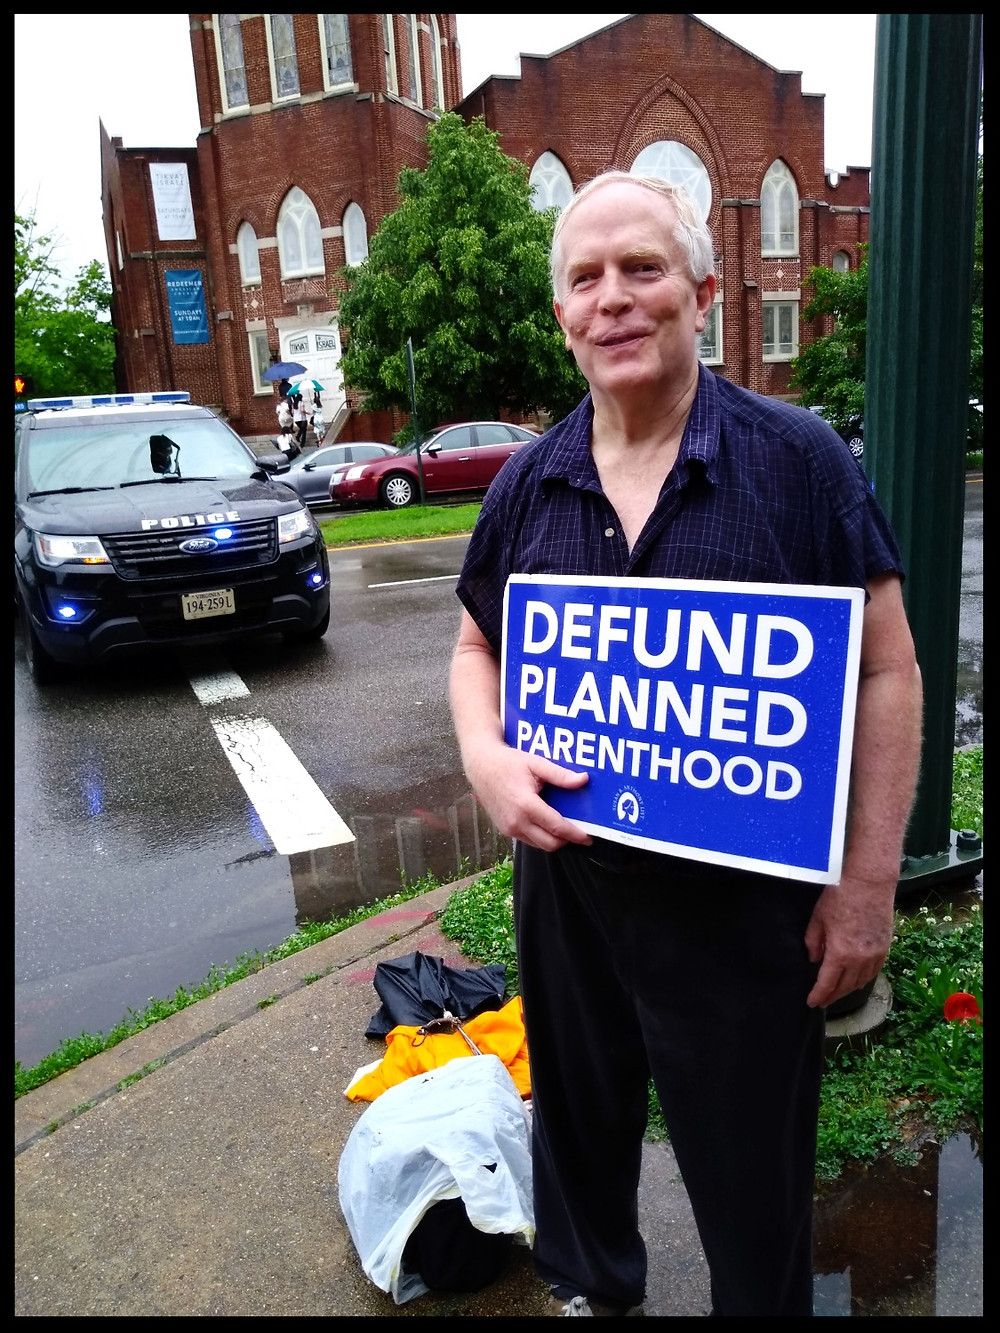 Roger stands for a photo with his sign while a police cruiser blocks traffic behind him.